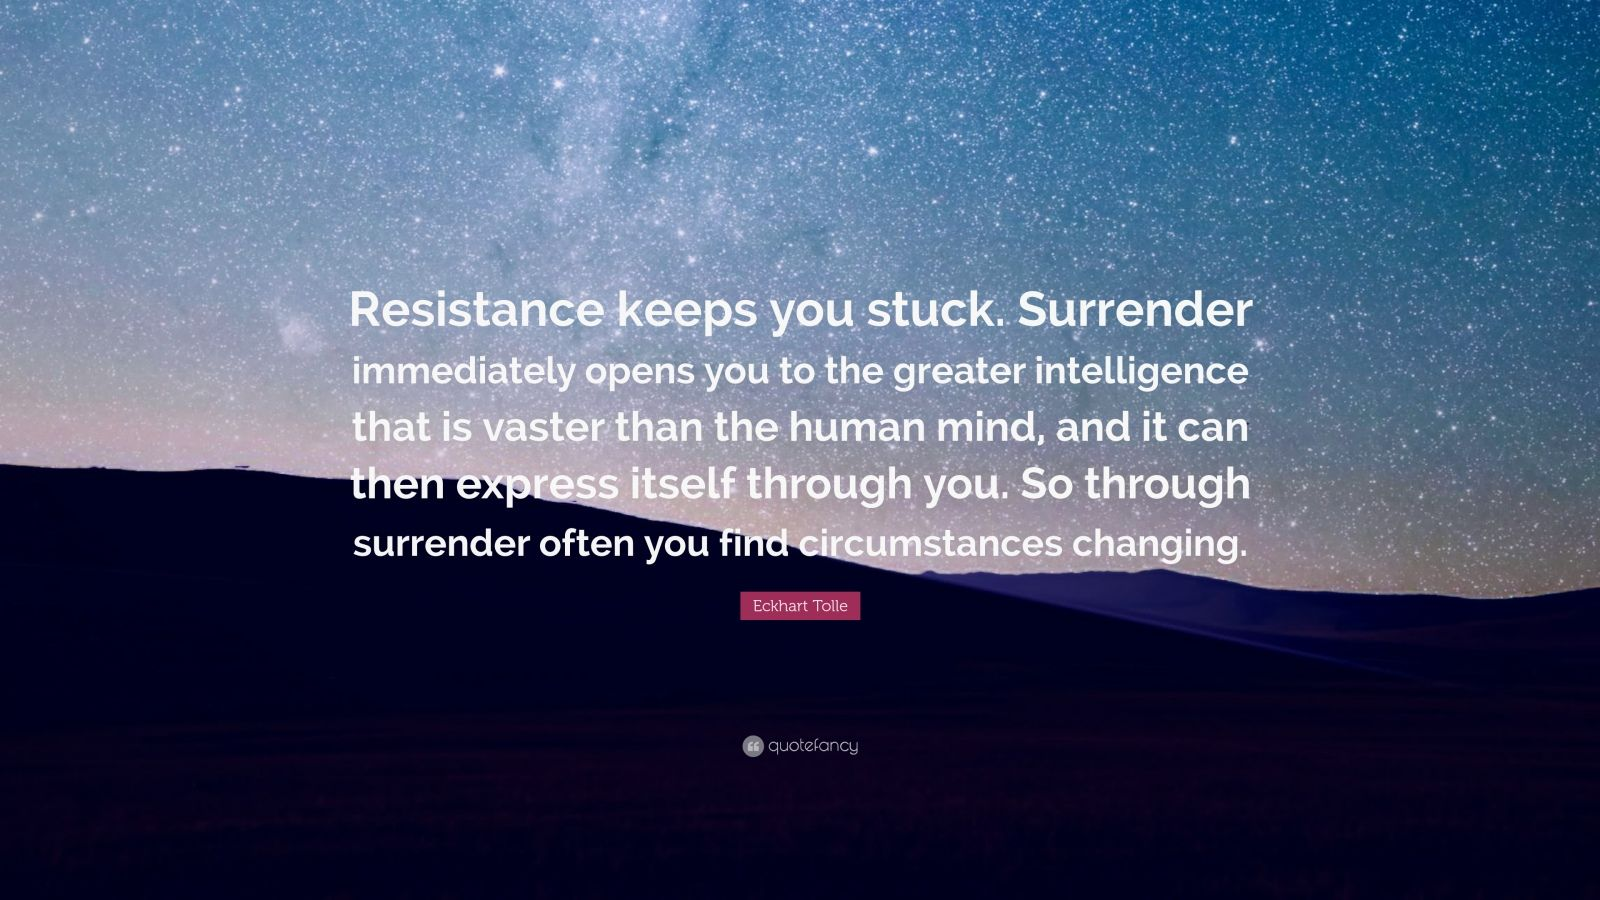 "Eckhart Tolle Quote: ""Resistance keeps you stuck. Surrender immediately opens you to the greater intelligence that is vaster than the human mind, and it can then express itself through you. So through surrender often you find circumstances changing."""